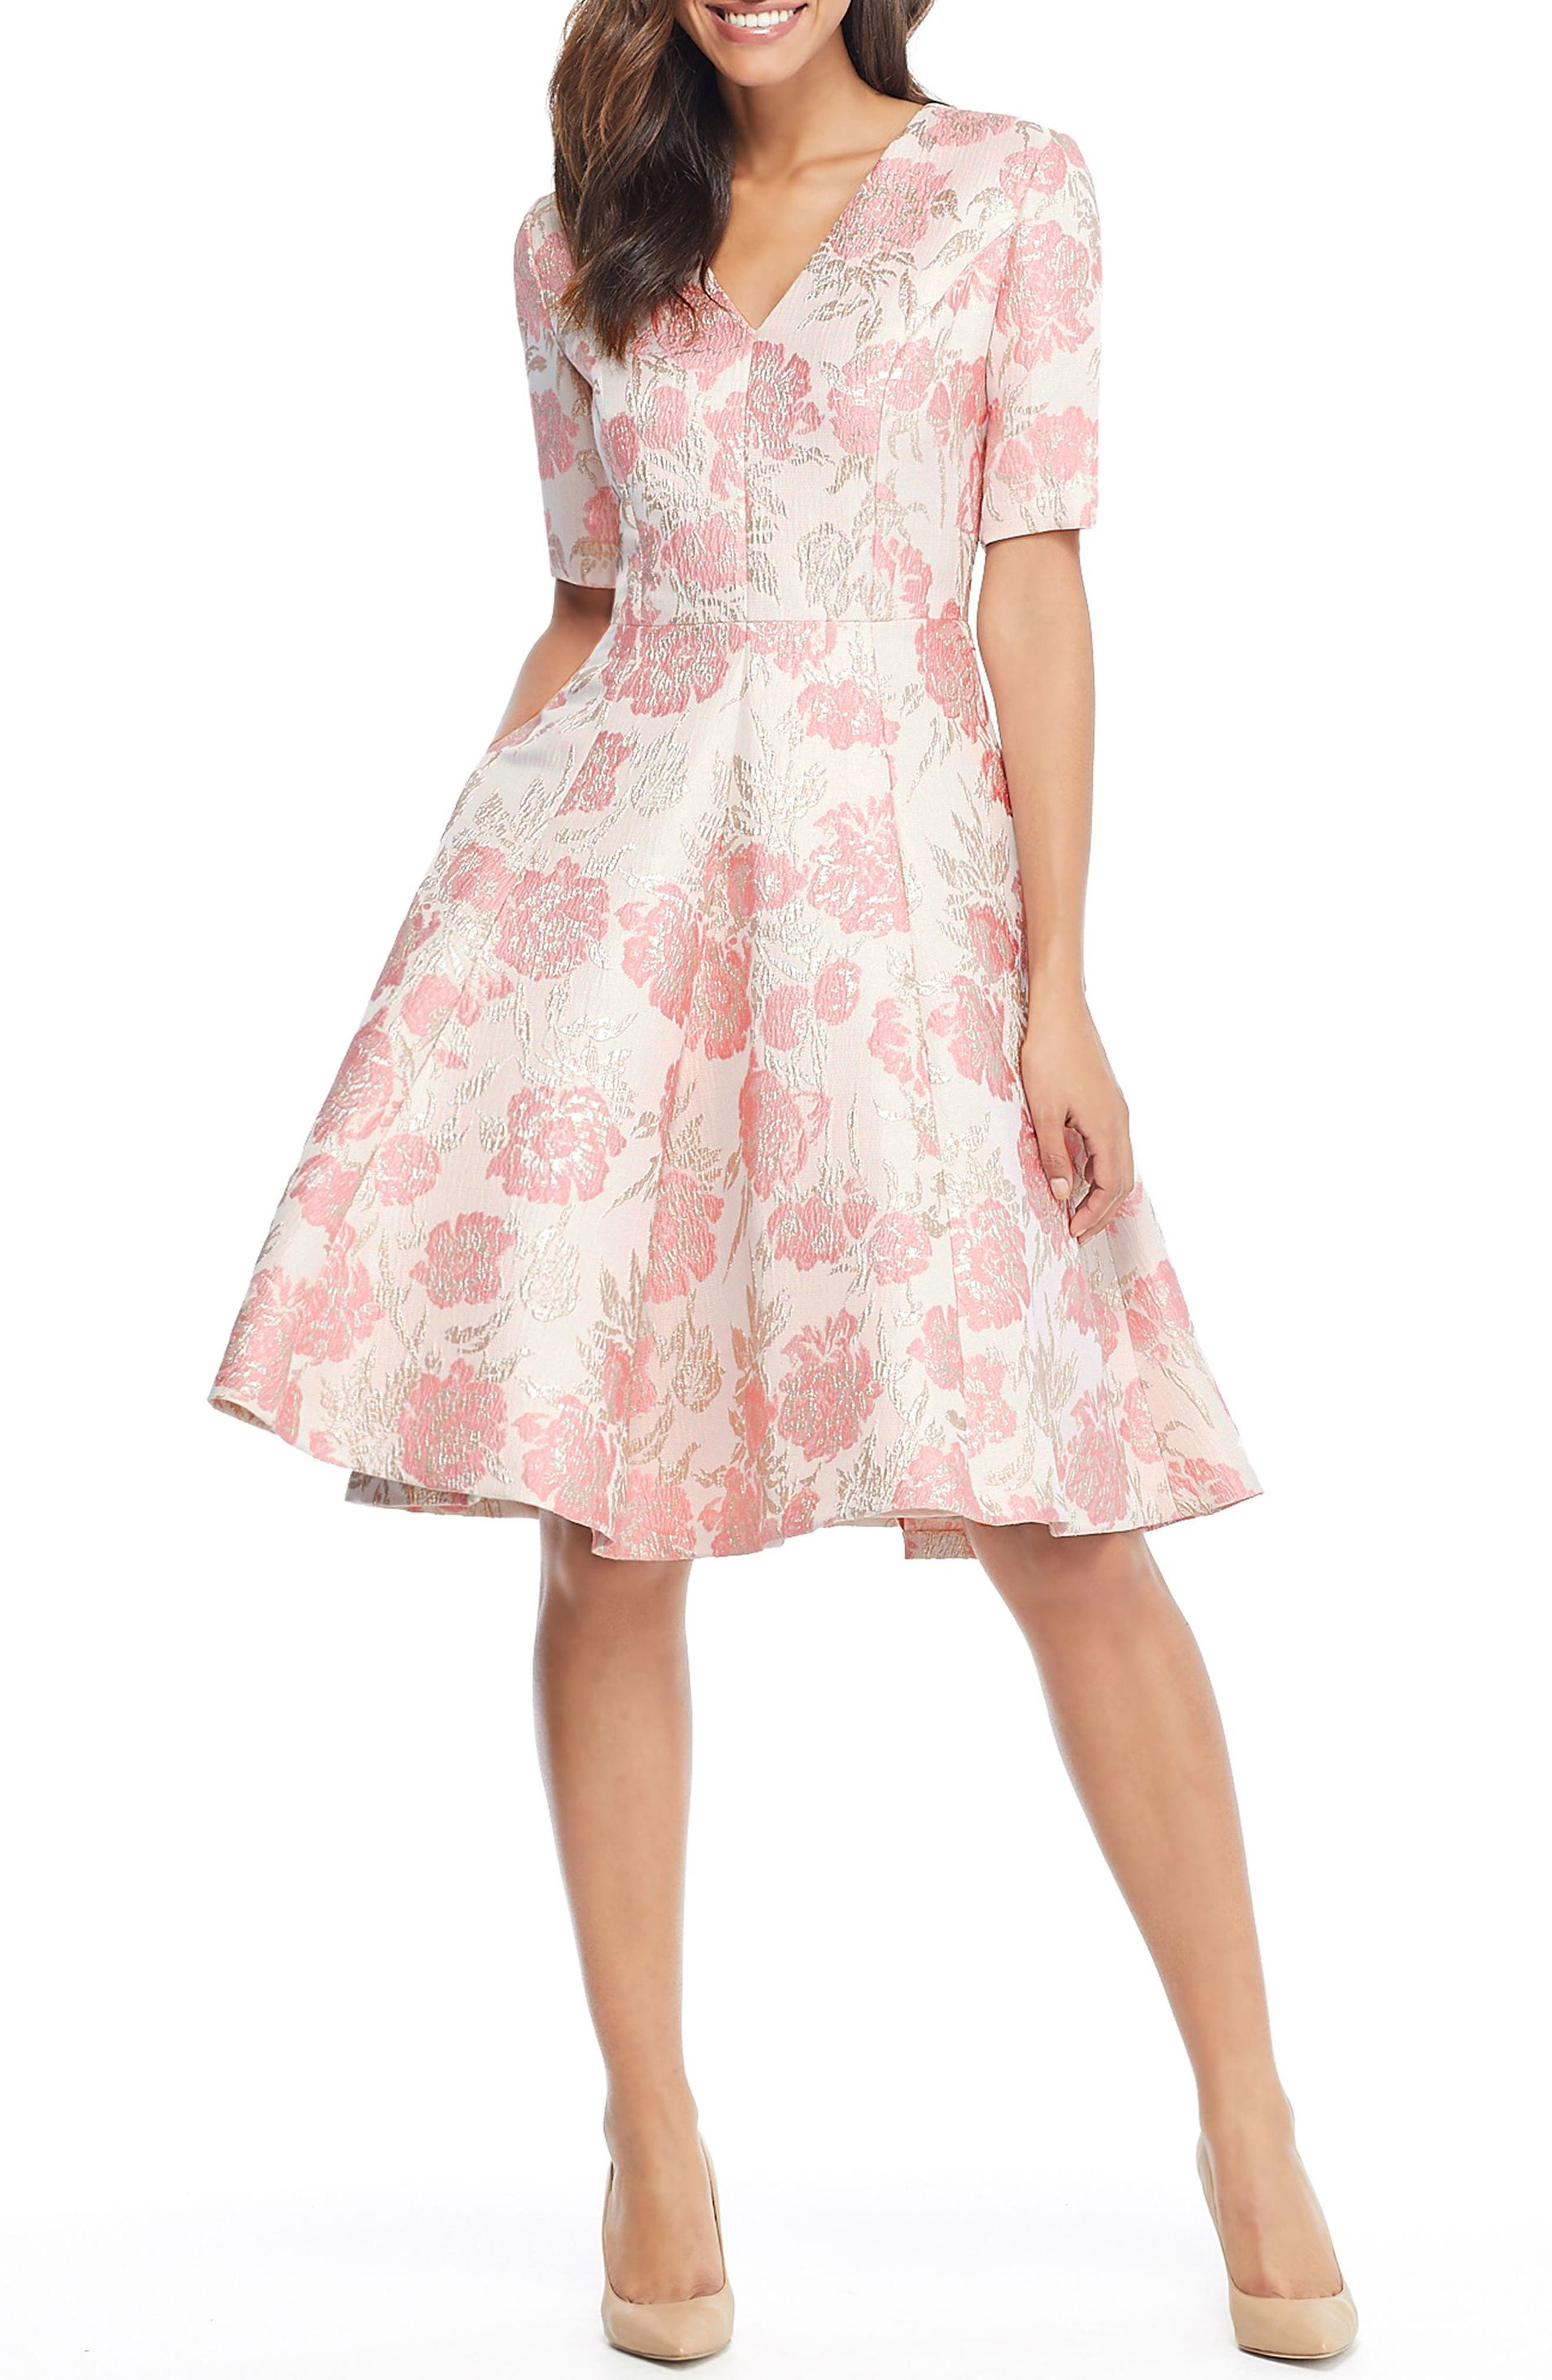 GAL MEETS GLAM COLLECTION, Adair Pink Passion Rose Jacquard Fit & Flare Dress, Main thumbnail 1, color, 685